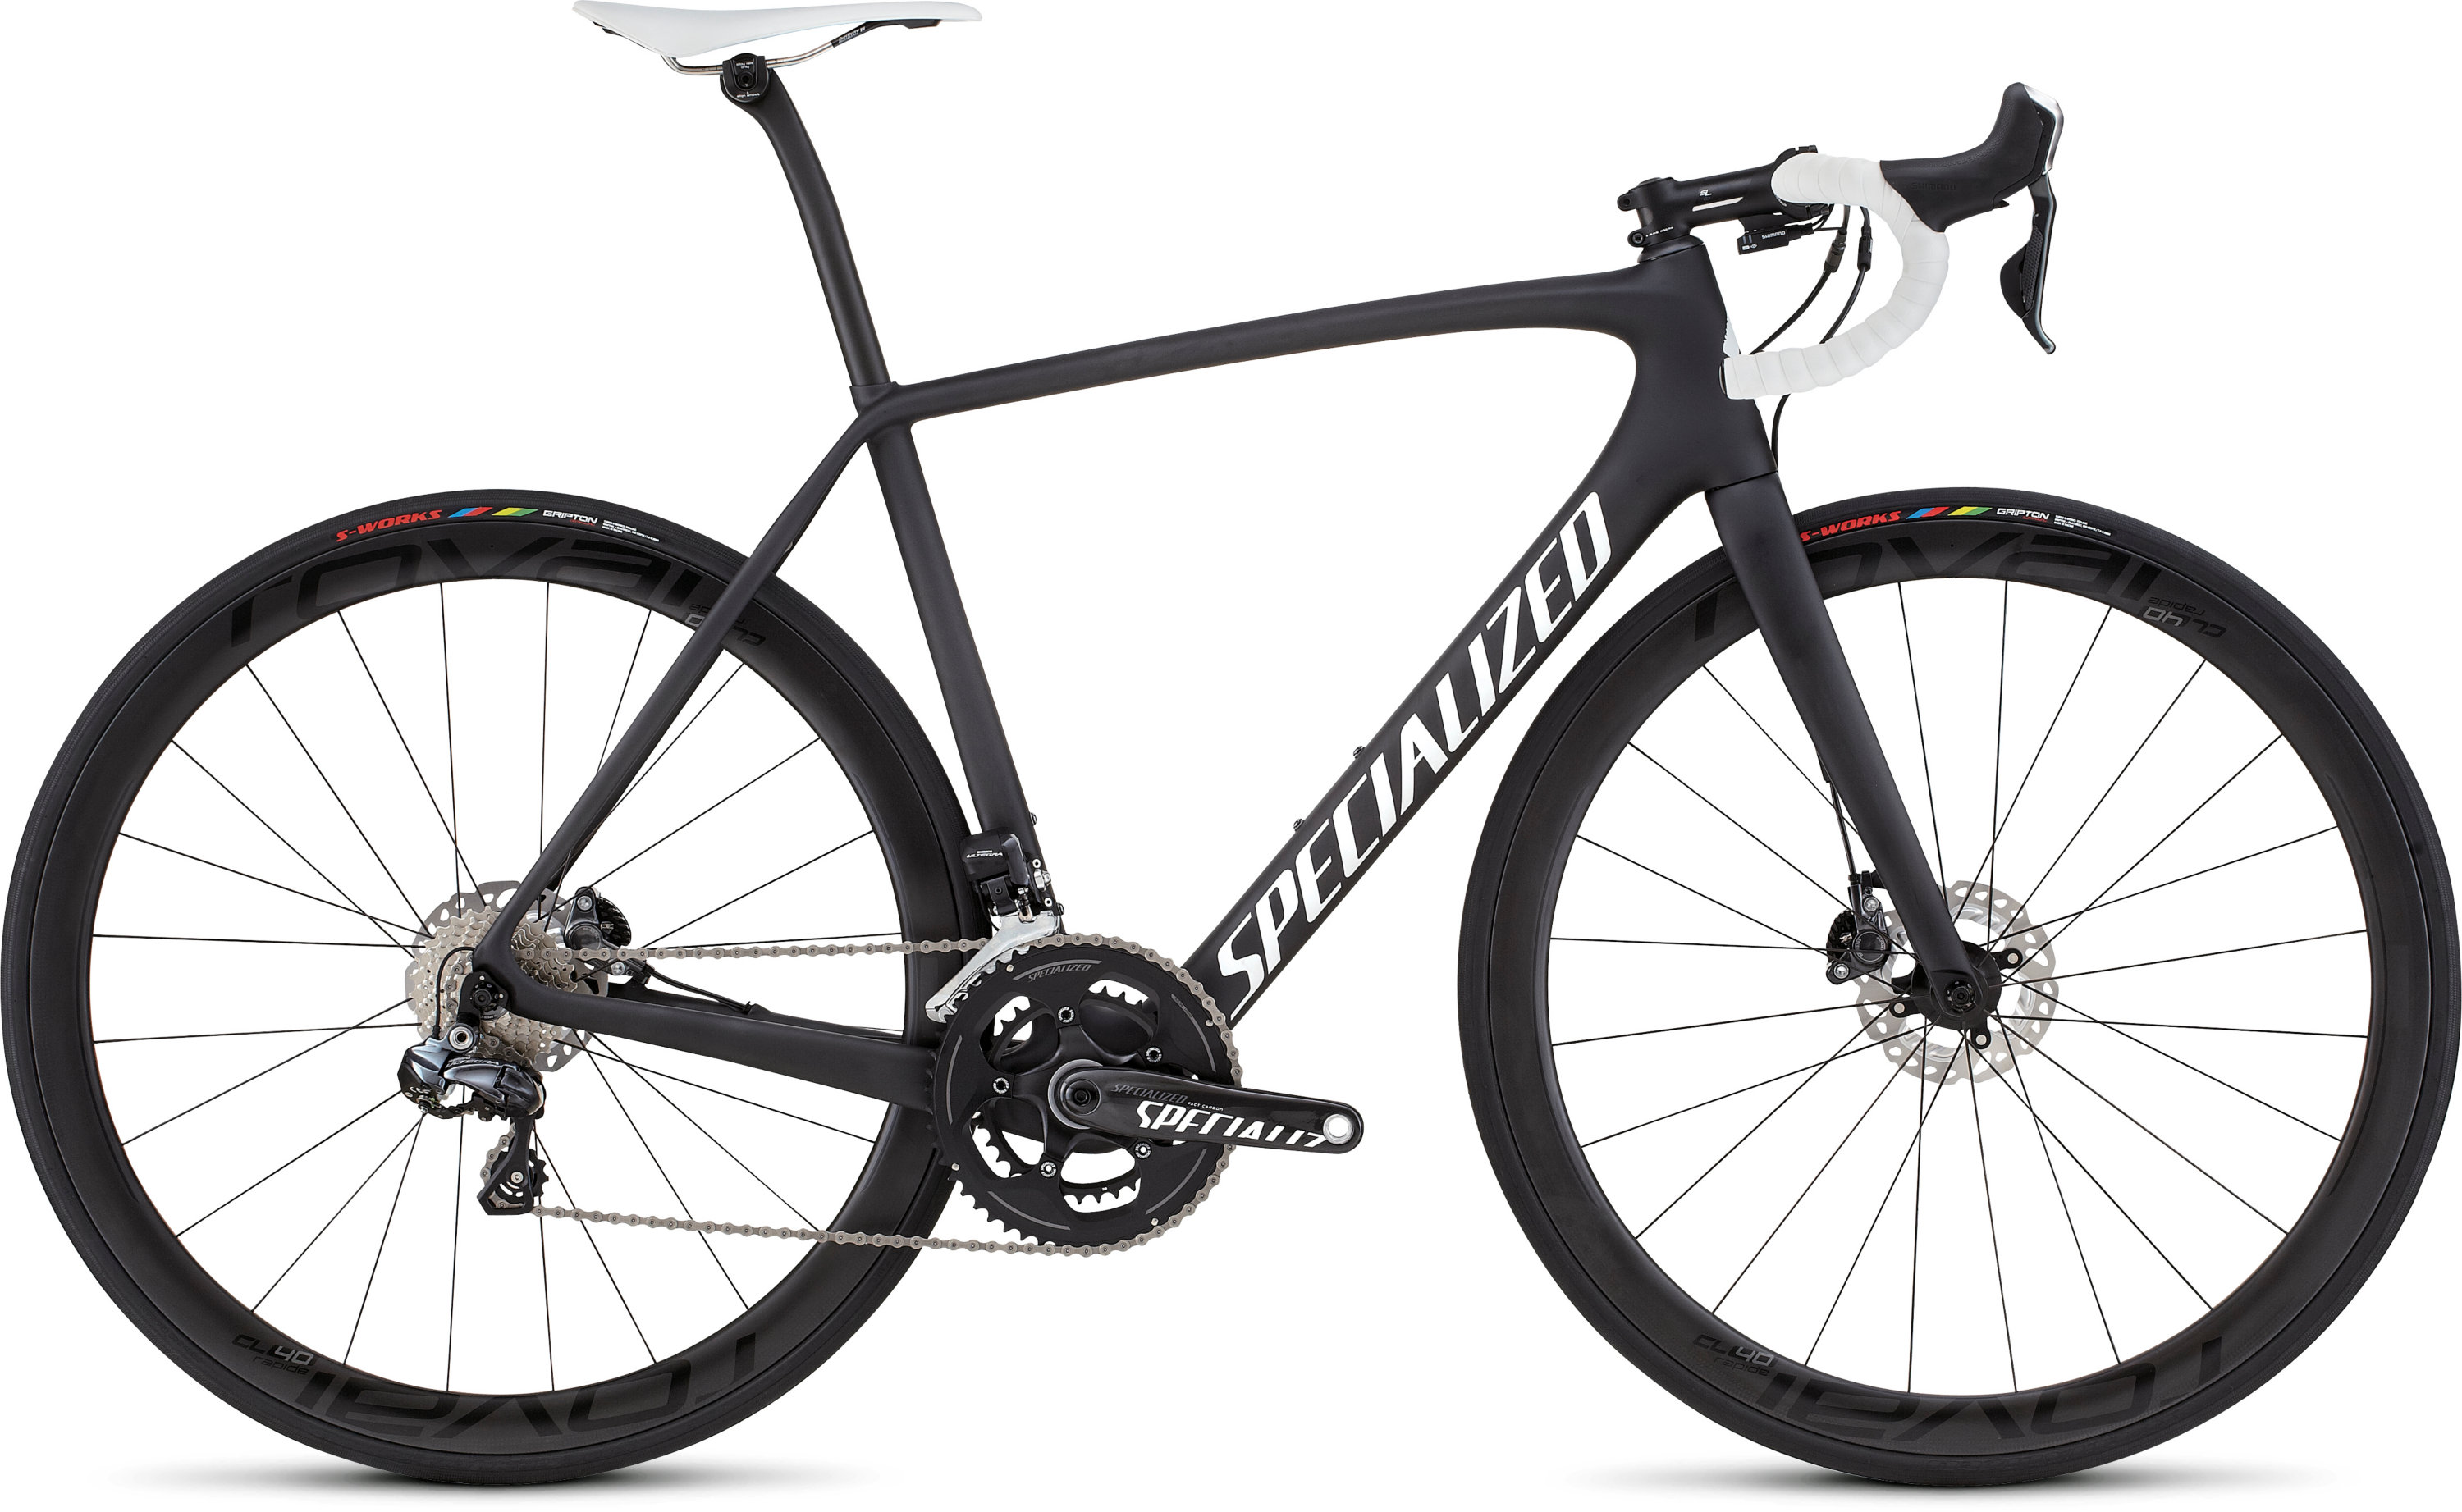 Prodisc Verlichting Tarmac Pro Disc Race Udi2 Specialized